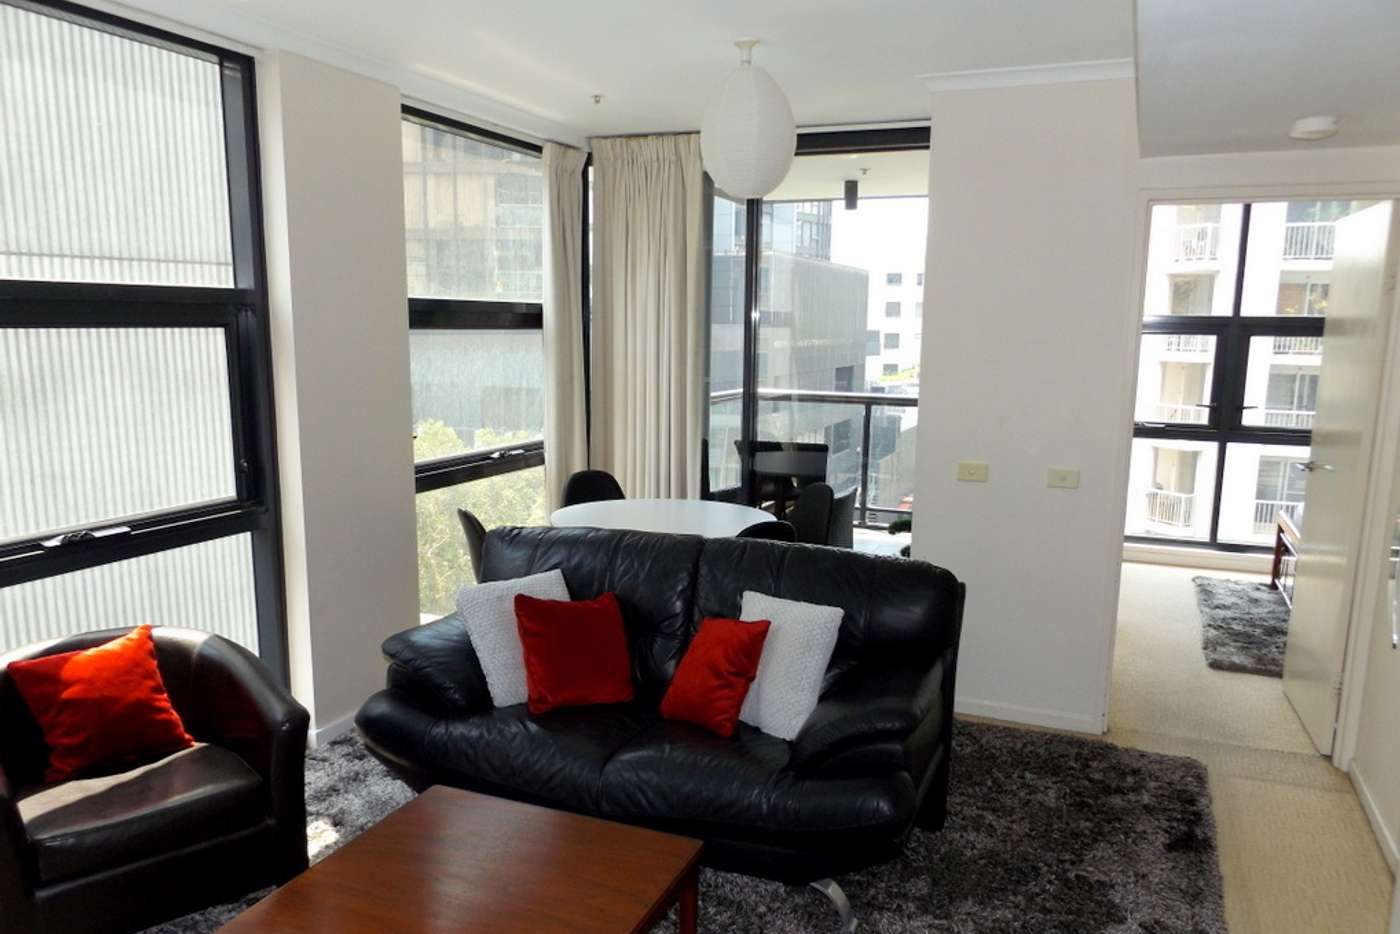 Main view of Homely apartment listing, 706/174 - 182 Goulburn Street, Darlinghurst NSW 2010